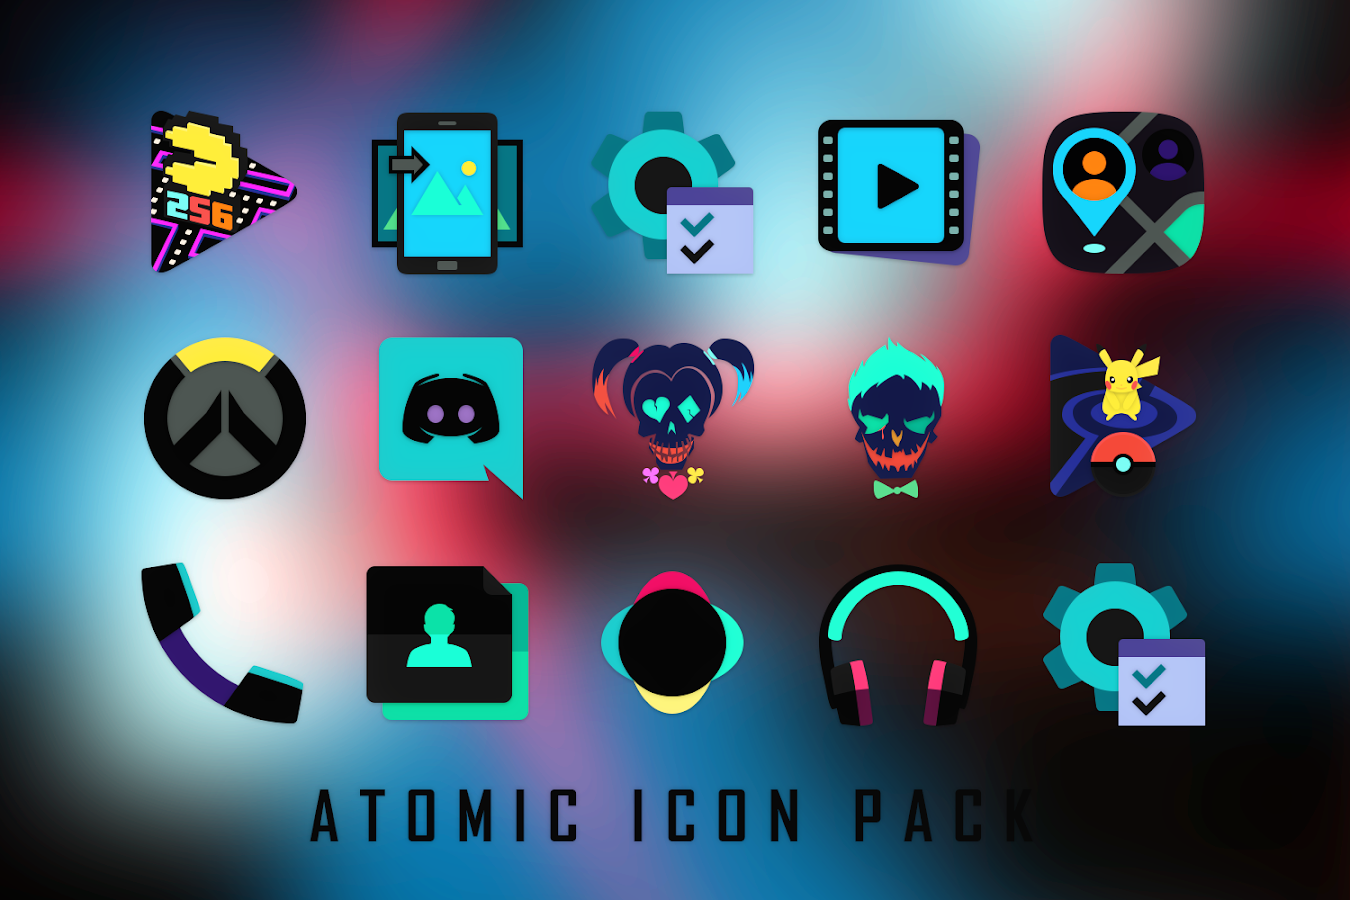 Atomic Icon Pack Screenshot 10